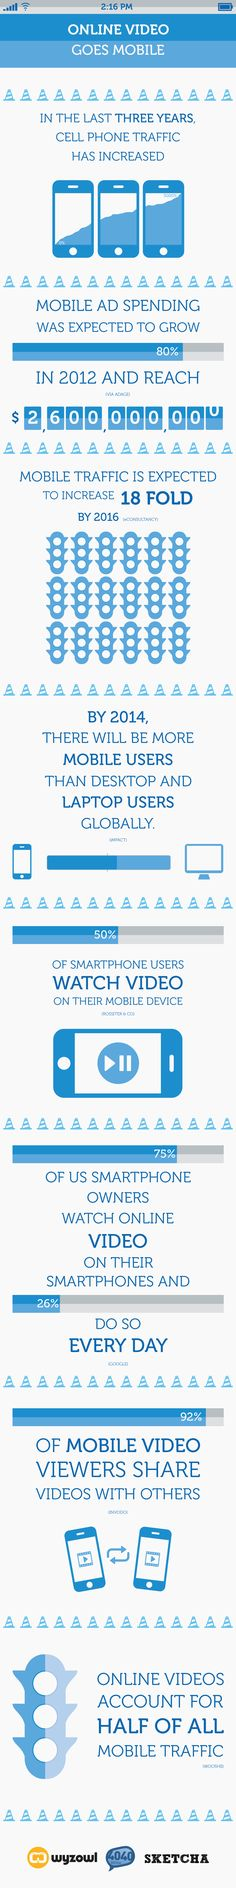 Web video is seeing massive growth. Watching video online has become a mainstream activity. With new devices, video everywhere has become a reality. #Web video #Mobile traffic #online videos #mobile devices #Mobile computing #Mobile